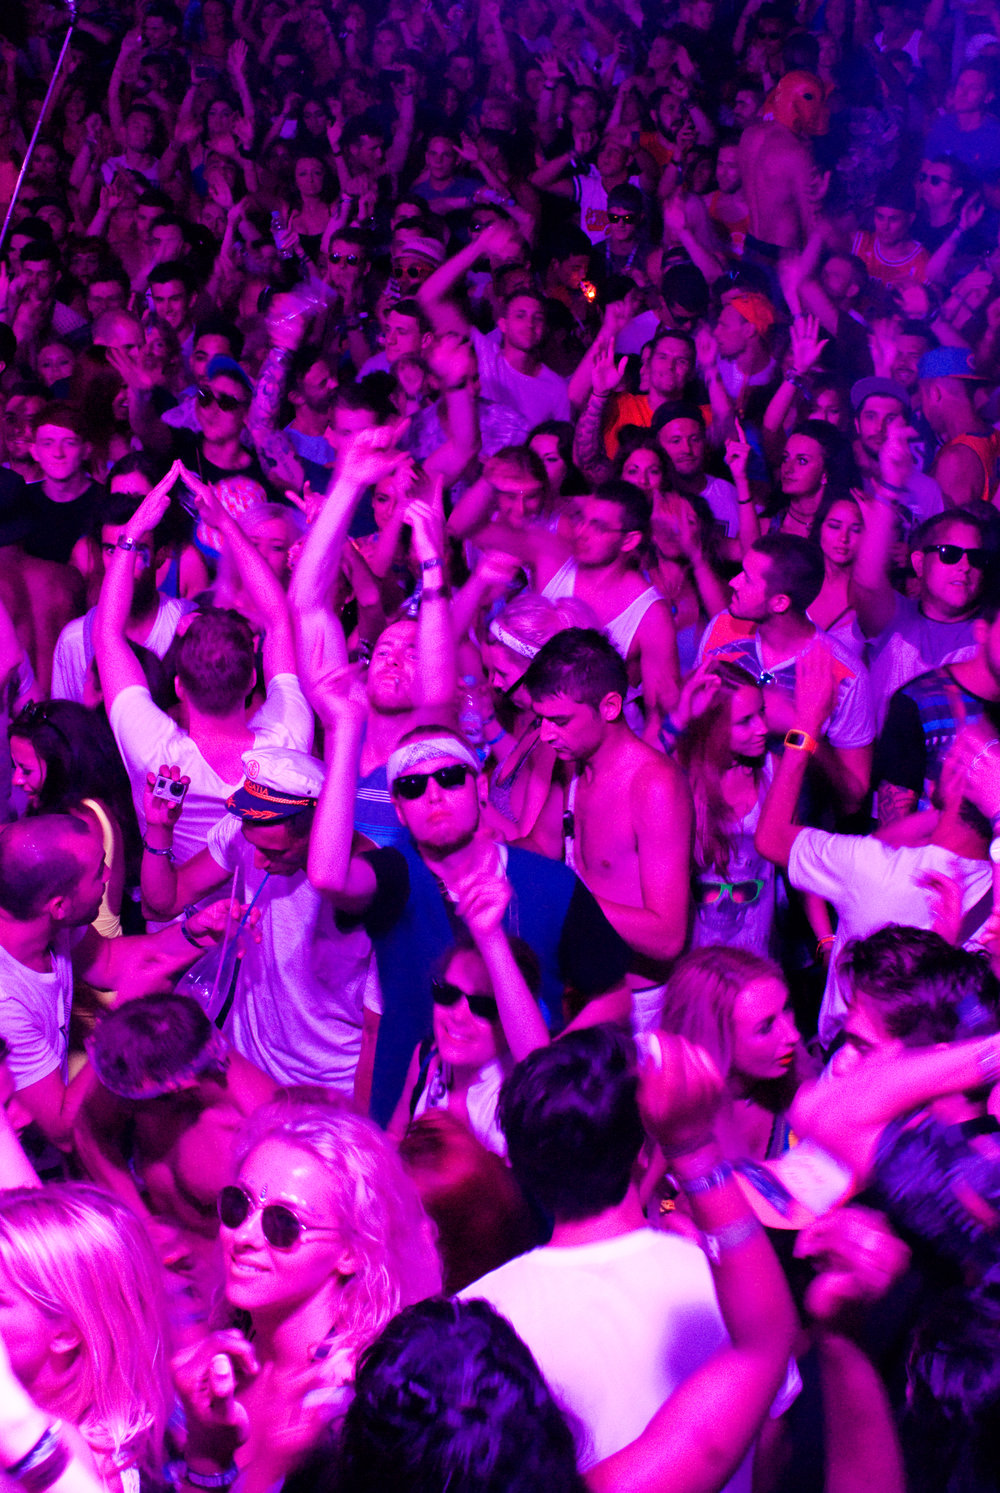 GeorginaCook_hideout_festival_croatia_club_crowd.jpg